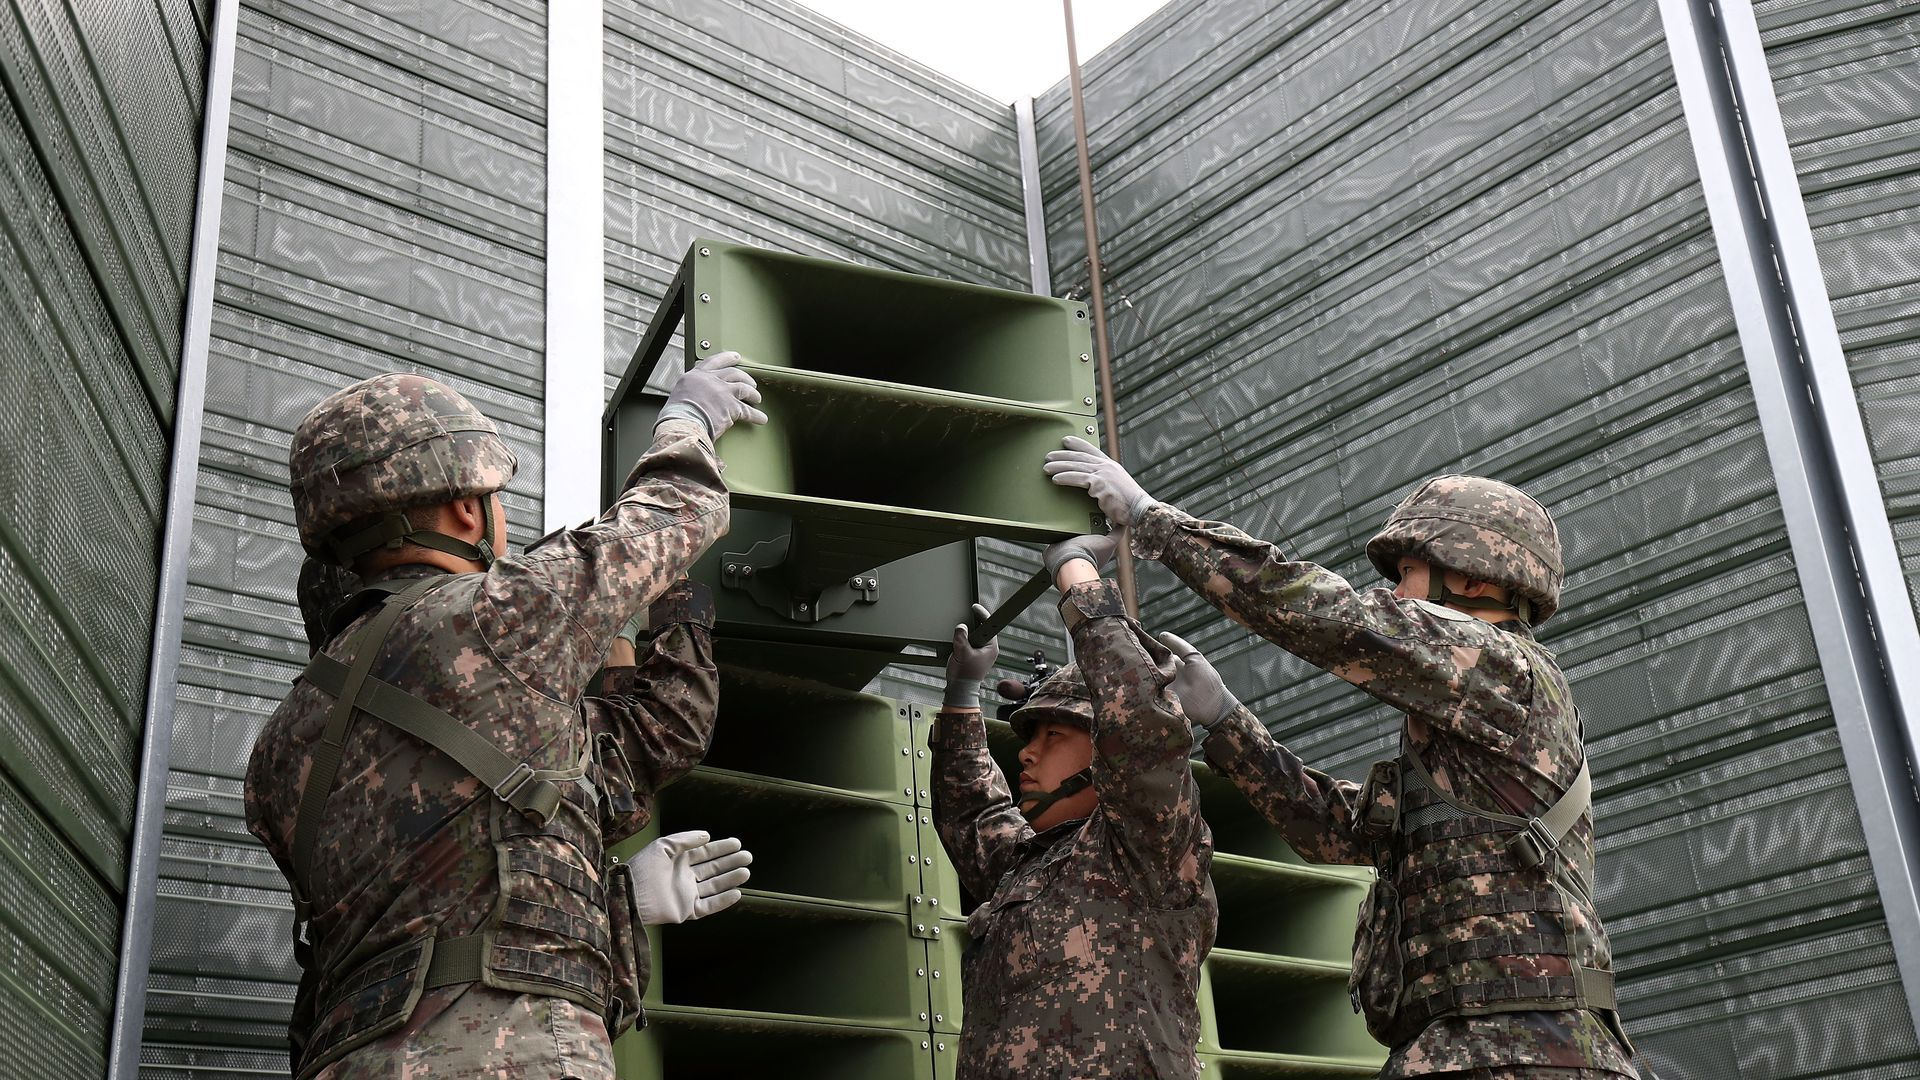 South Korean soldiers removing propaganda speakers